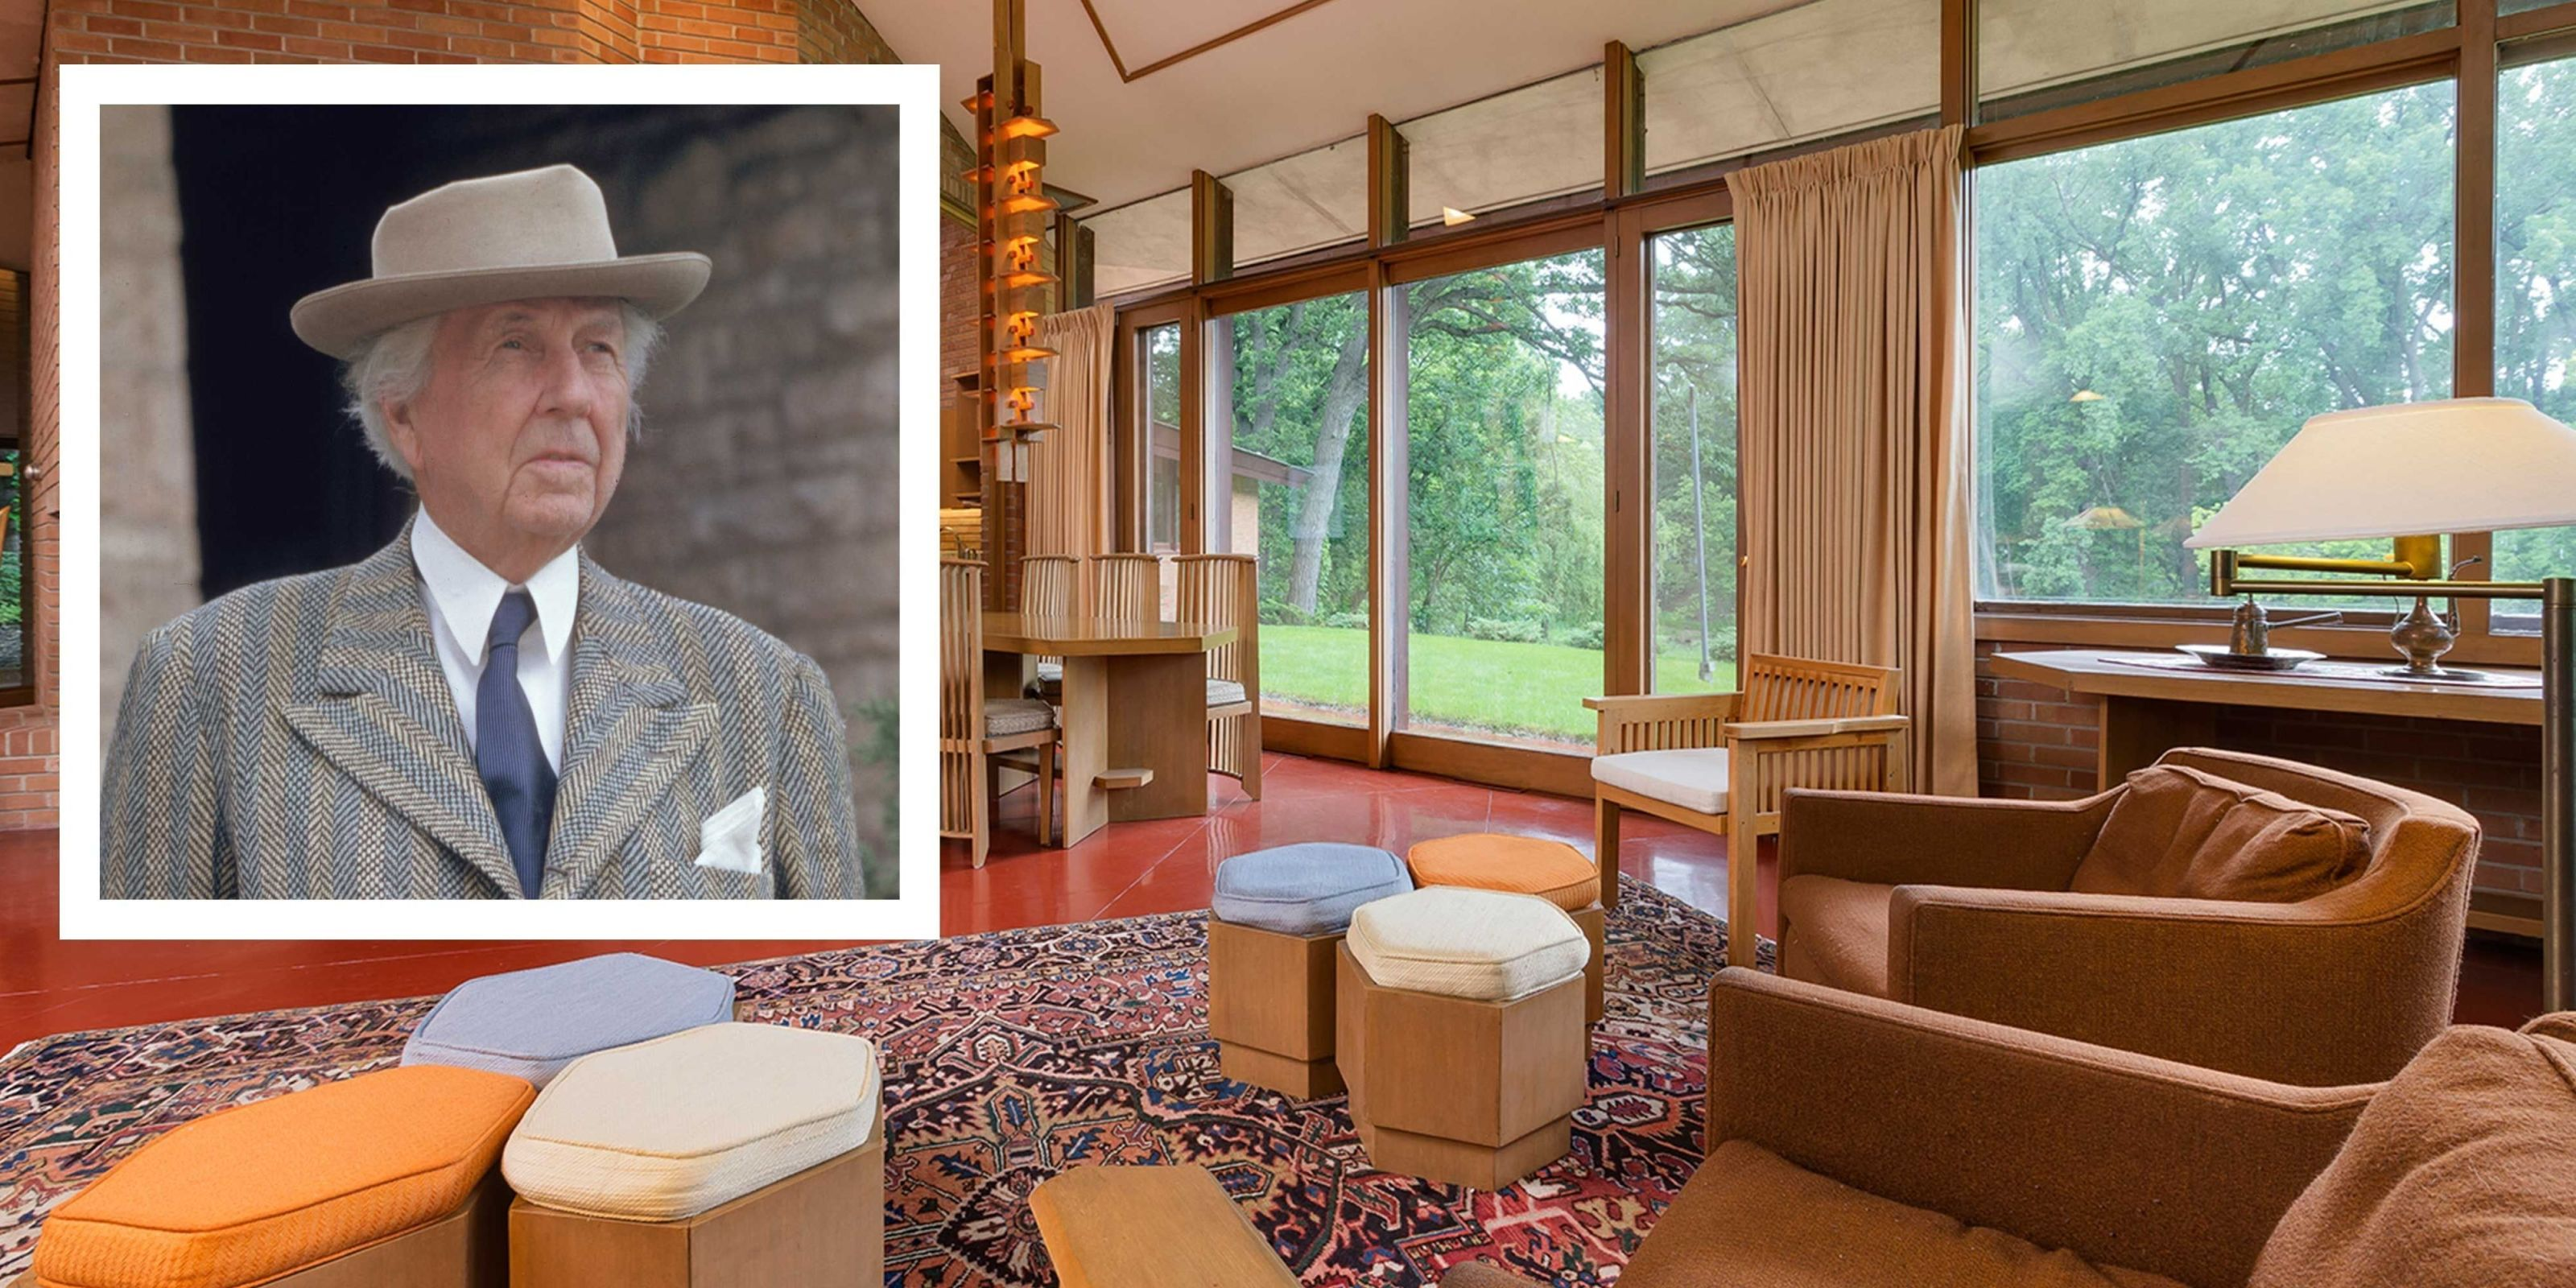 An Untouched Frank Lloyd Wright Home From 1960 Is on the Market